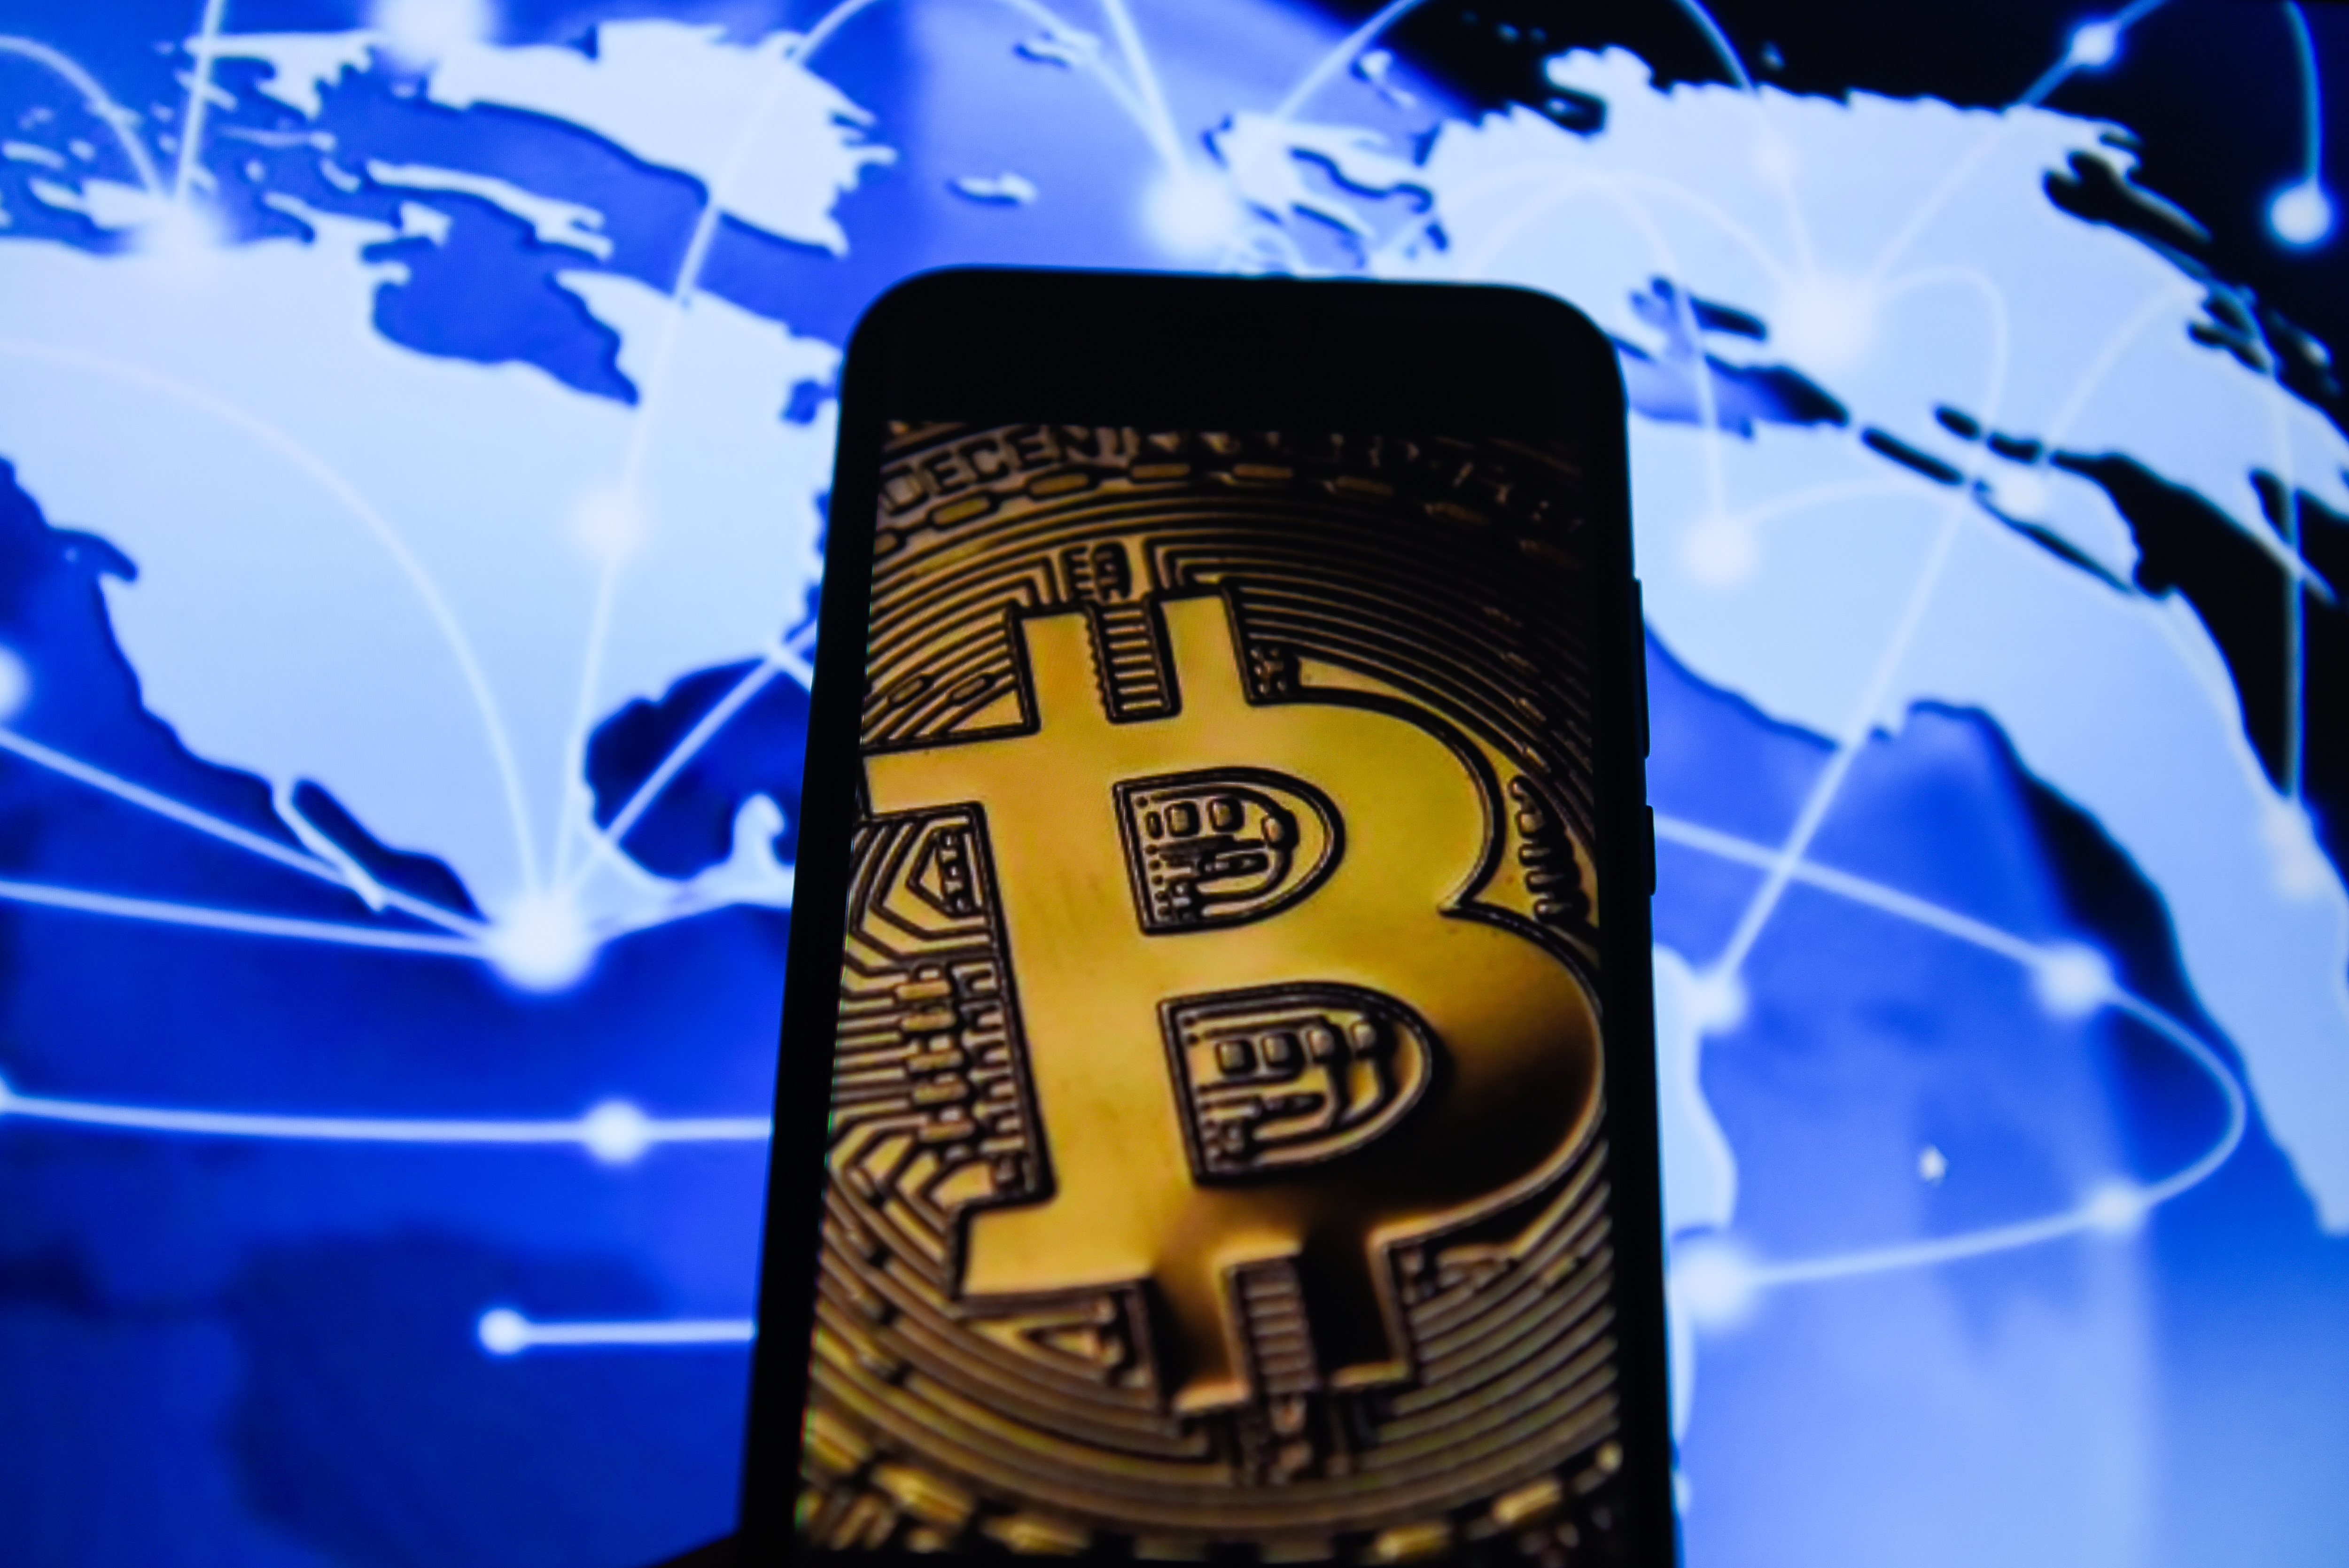 Bitcoin is seen on an android mobile phone